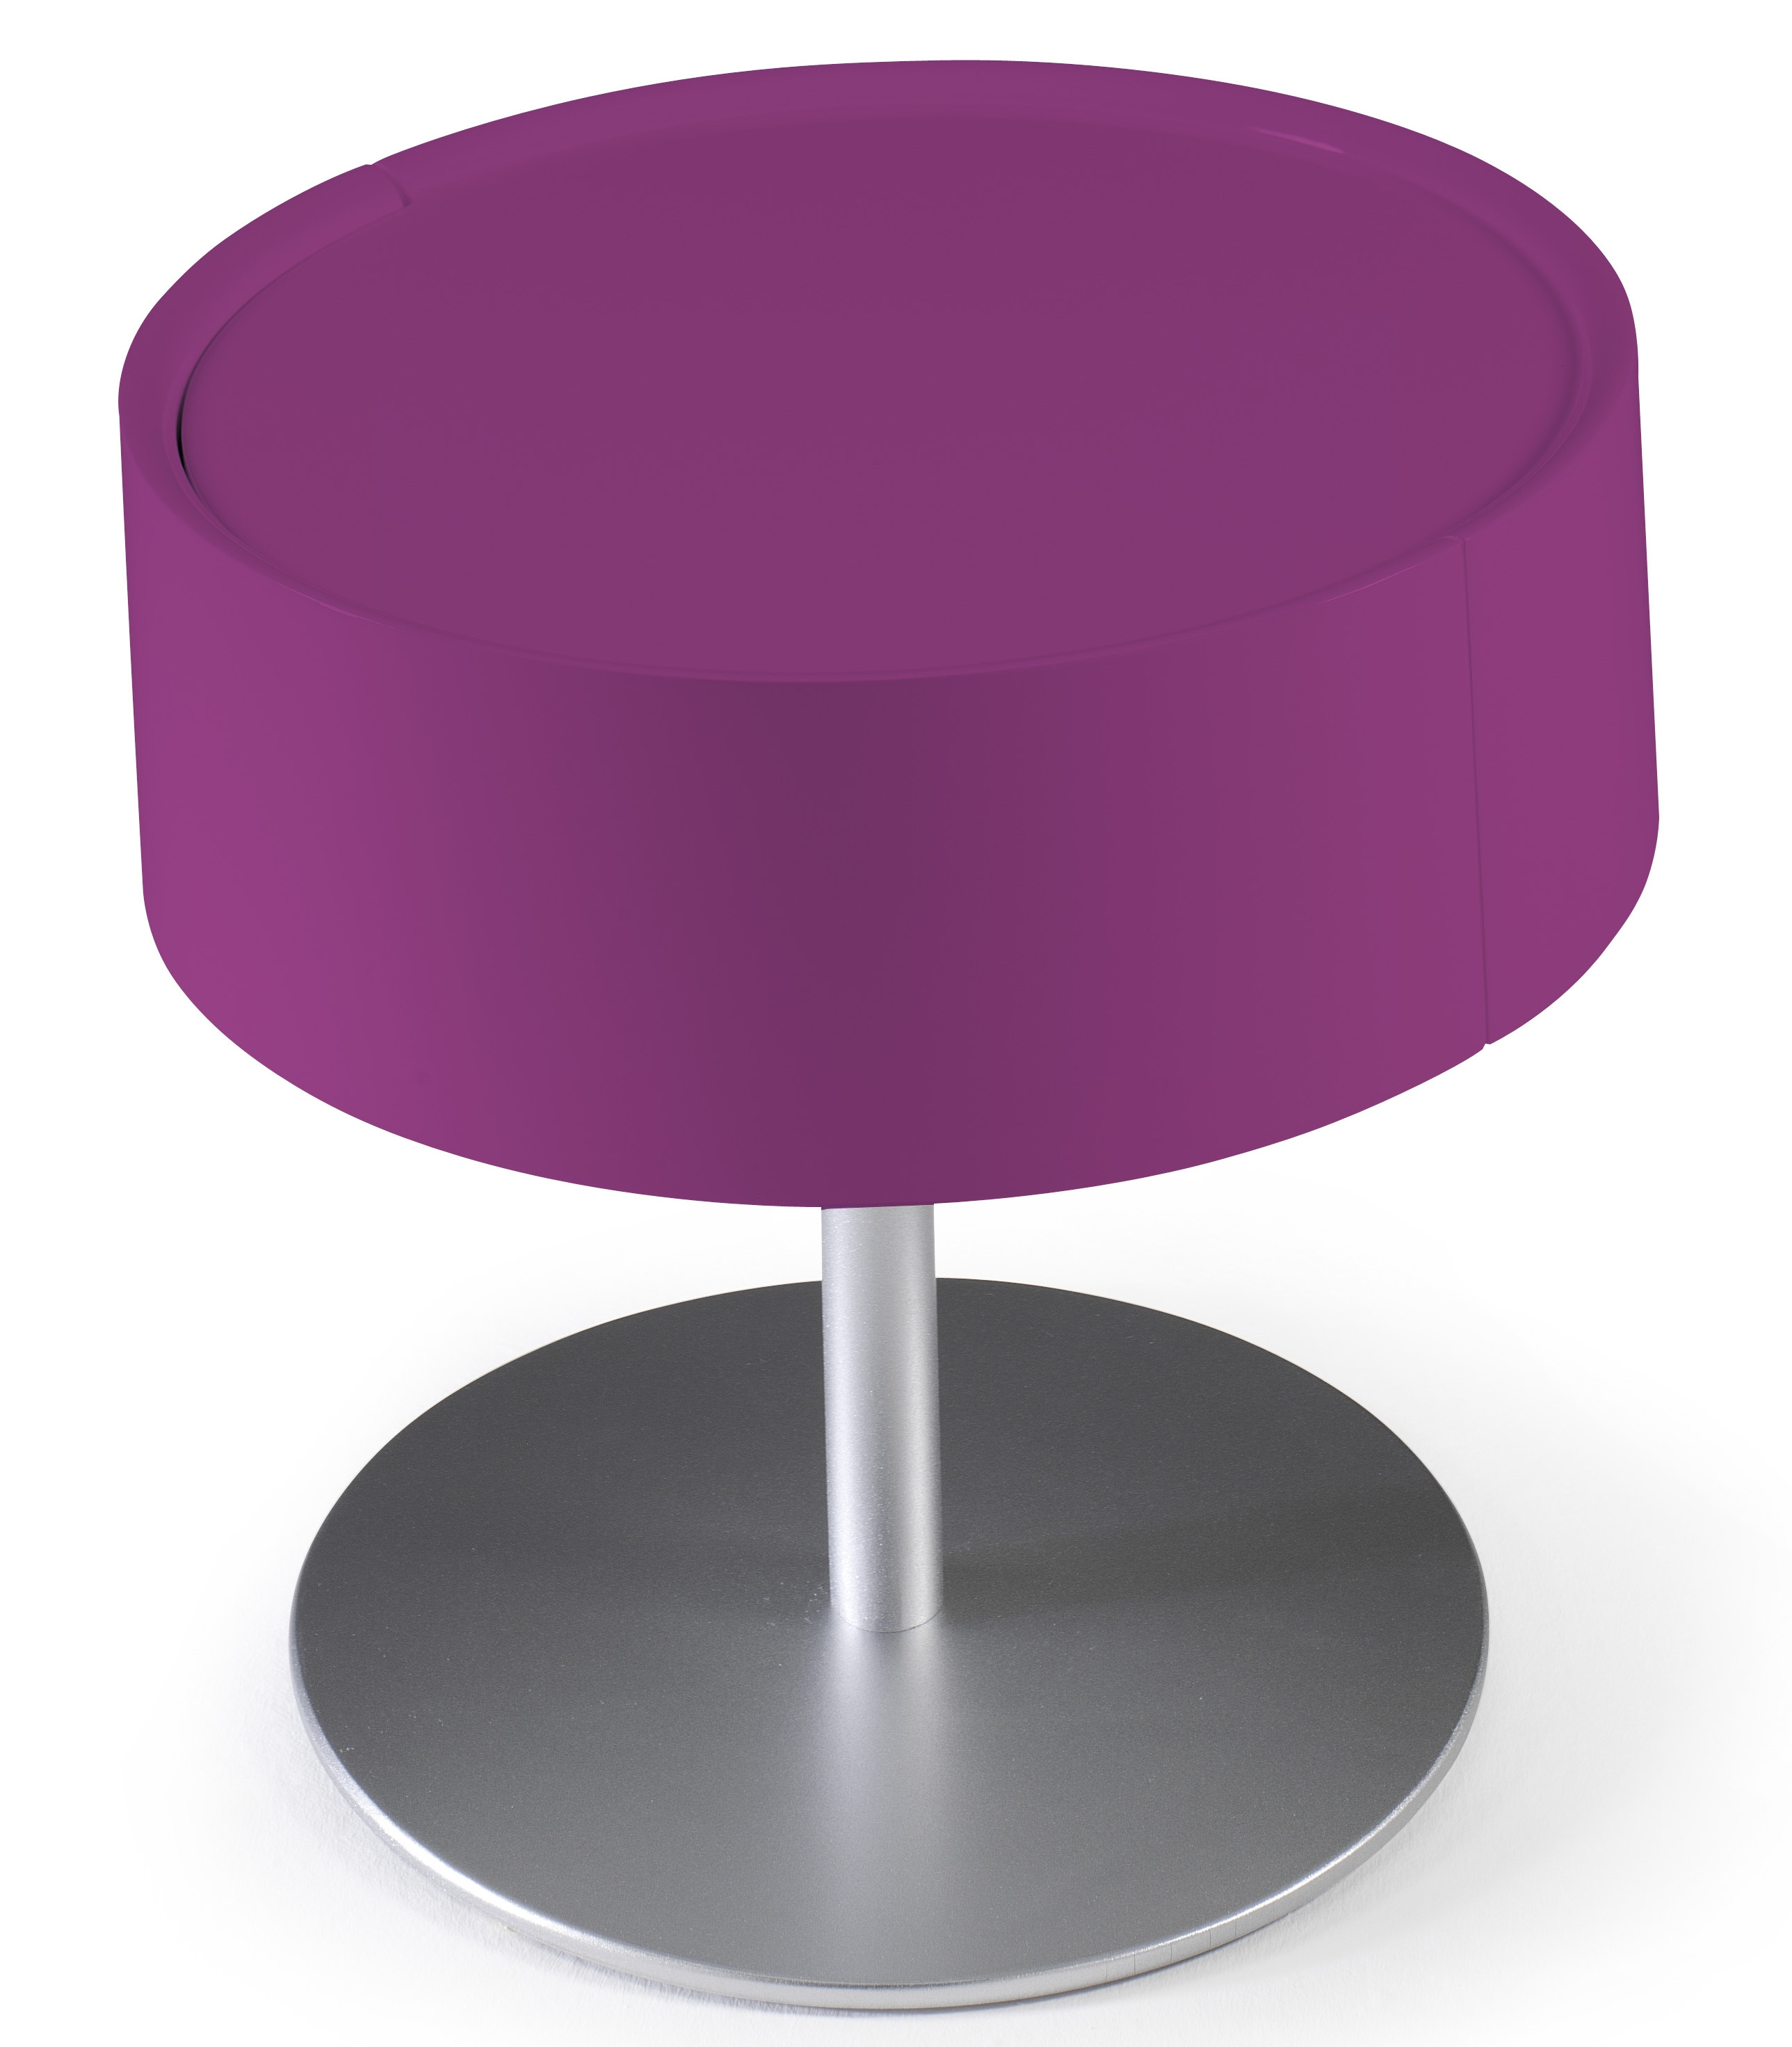 Table de chevet design fuchsia laqu torsada - Table de chevet laque ...